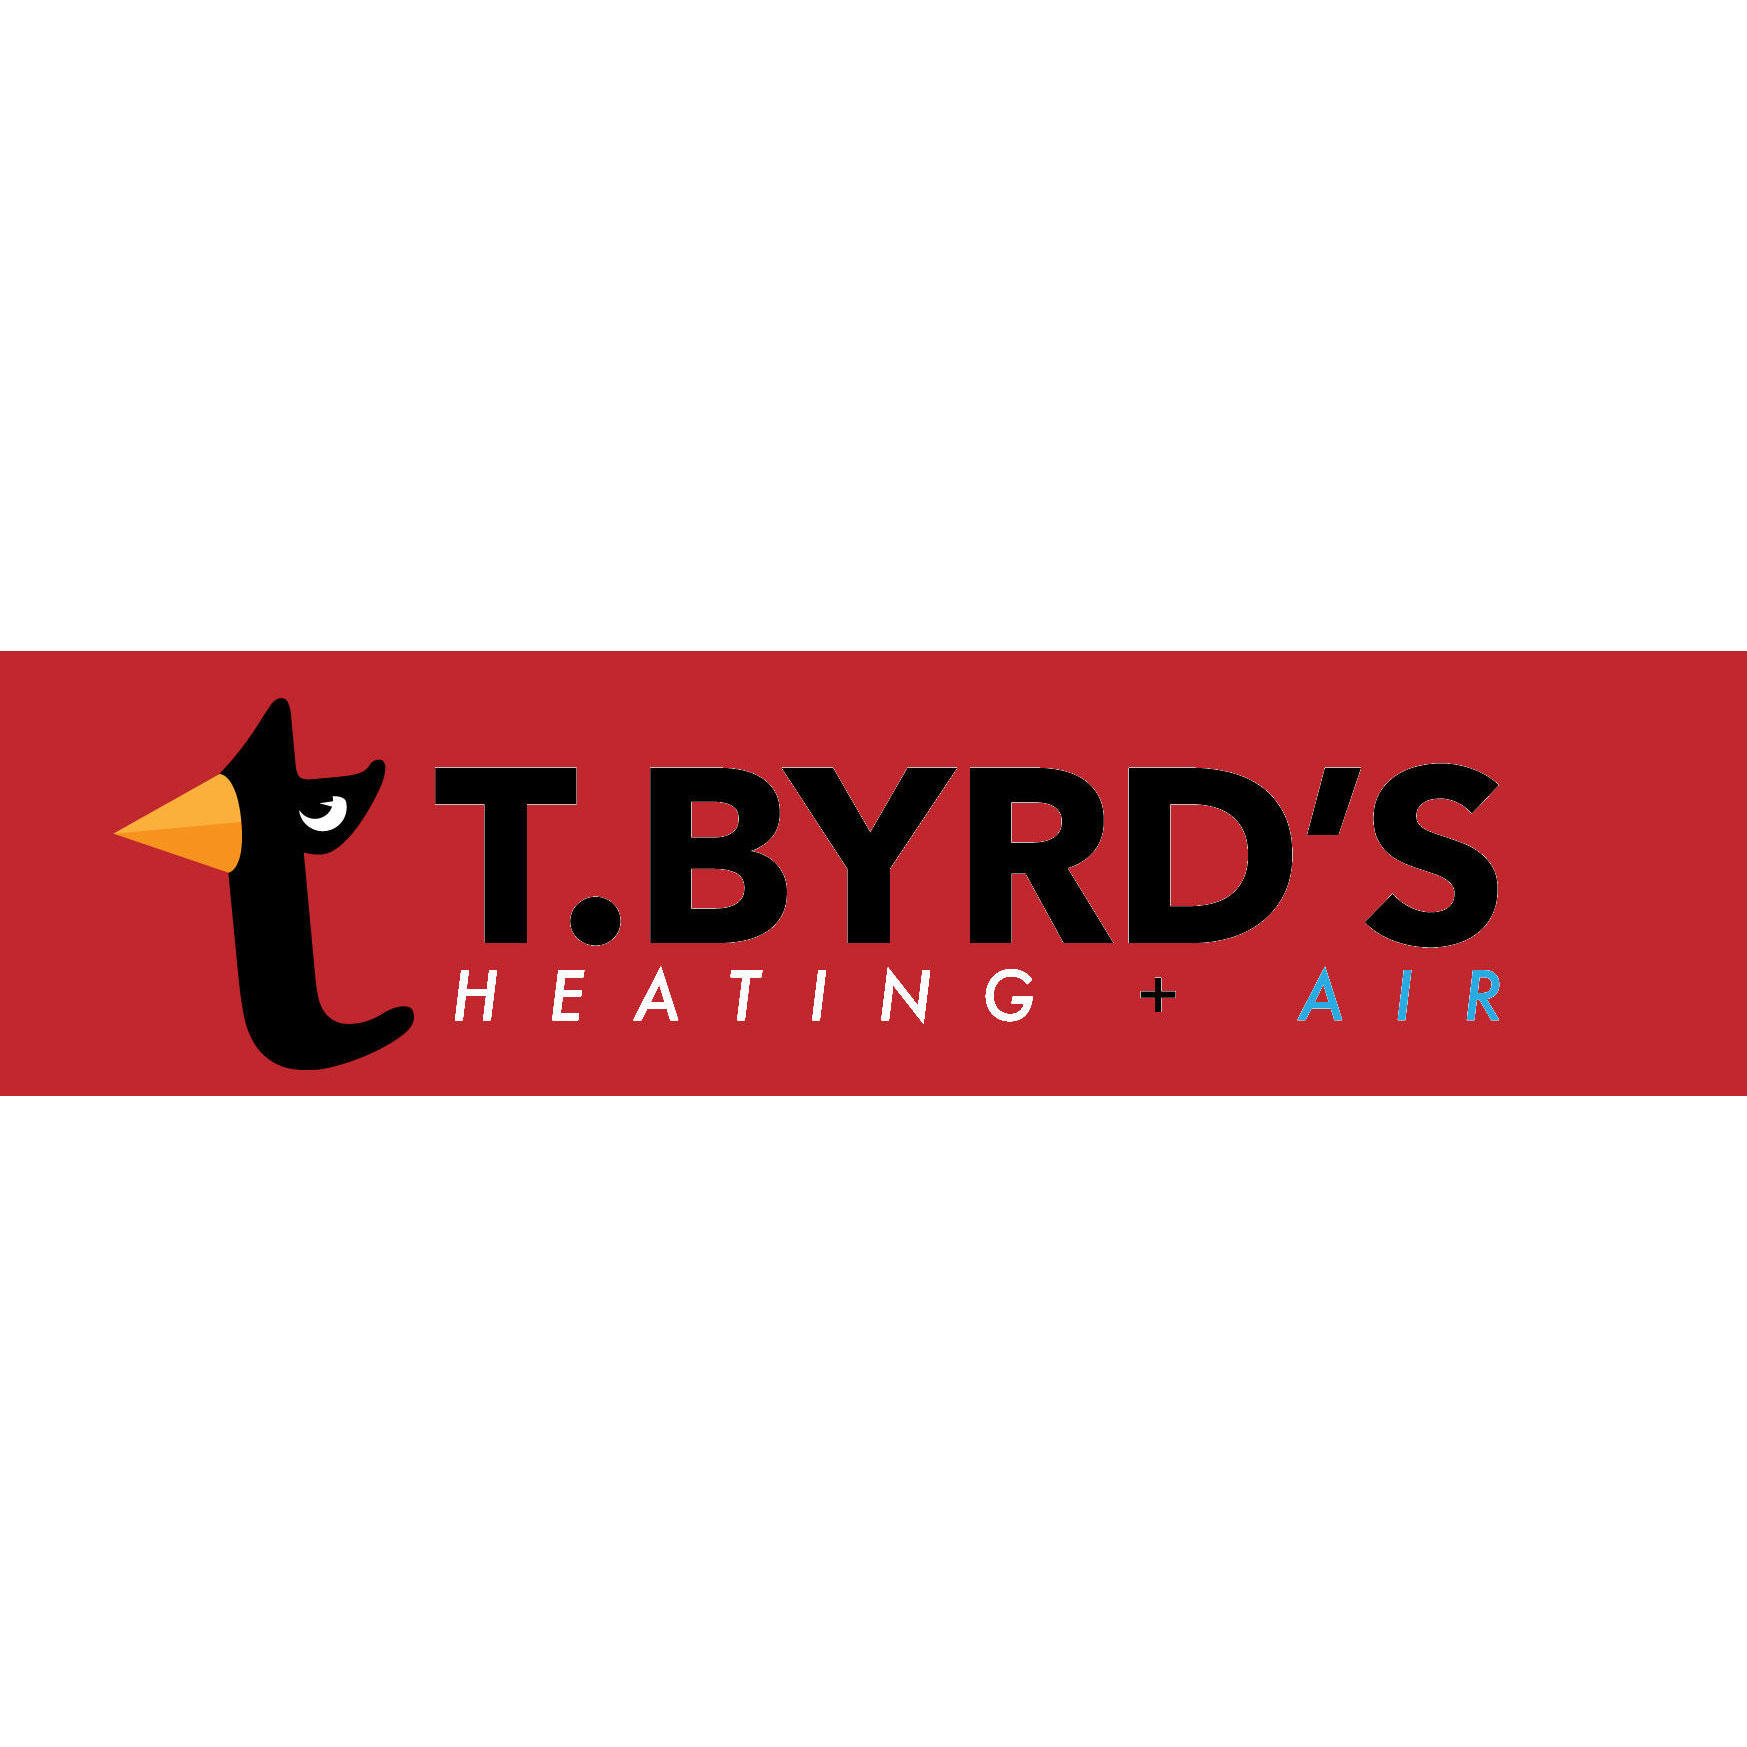 T. Byrd's Heating and Air LLC - Concord, NC - Heating & Air Conditioning